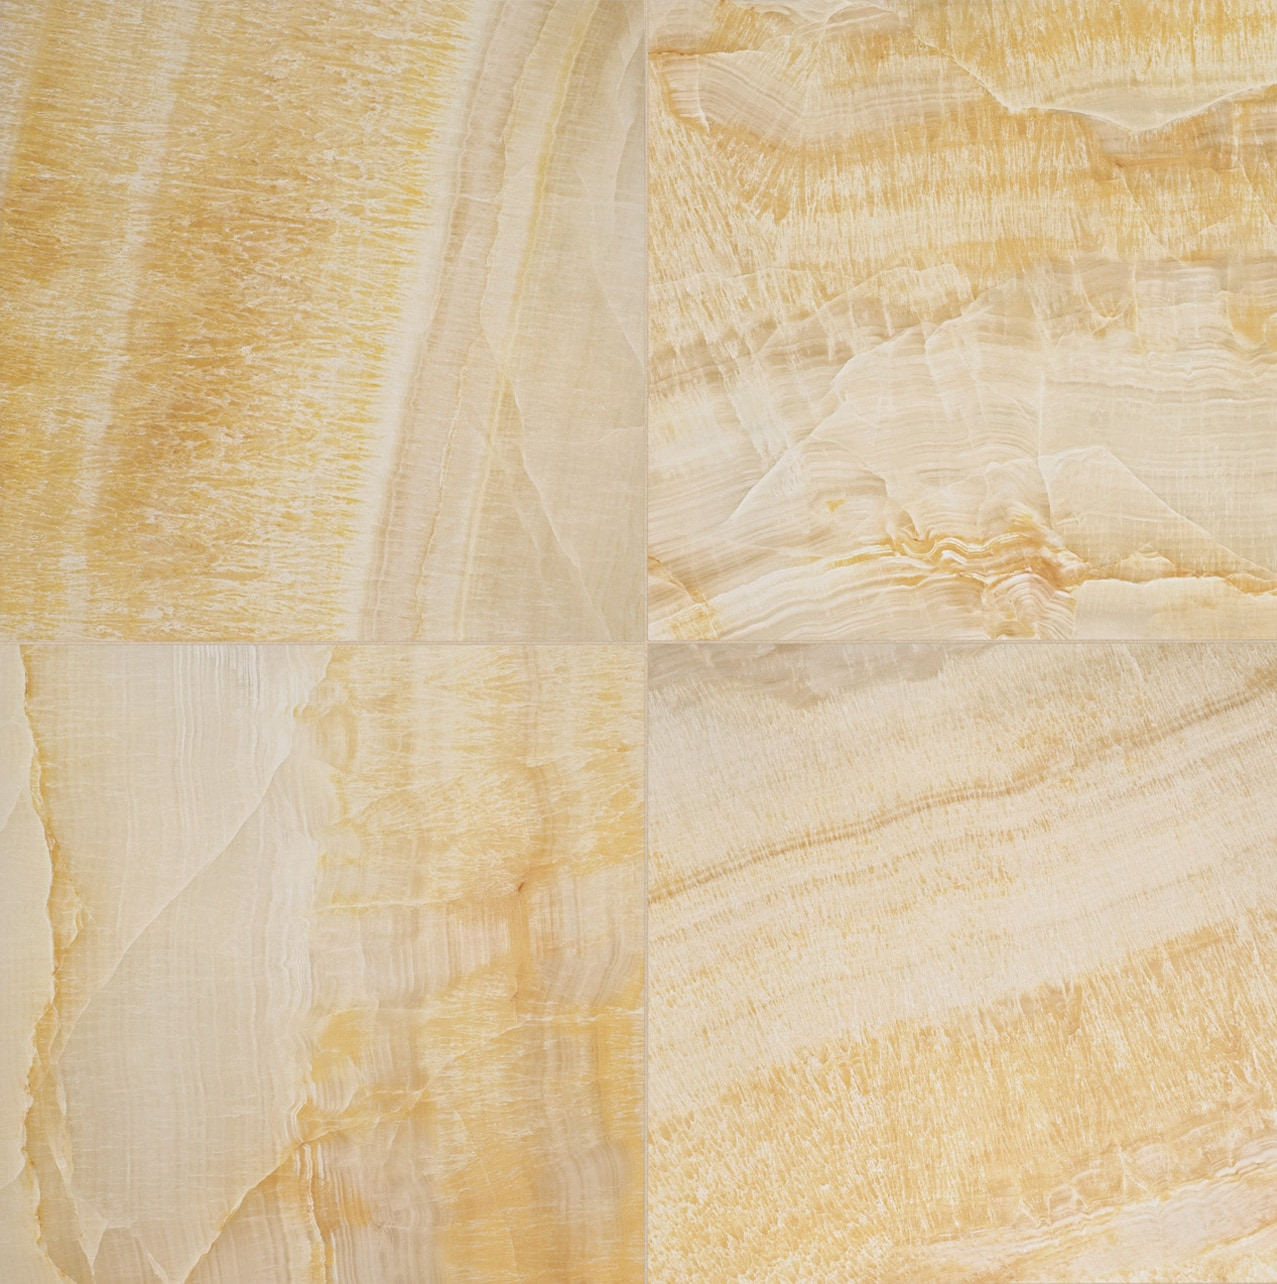 Versace Marble Oro Onice poliert 58-5X58-5 cm 02400120-